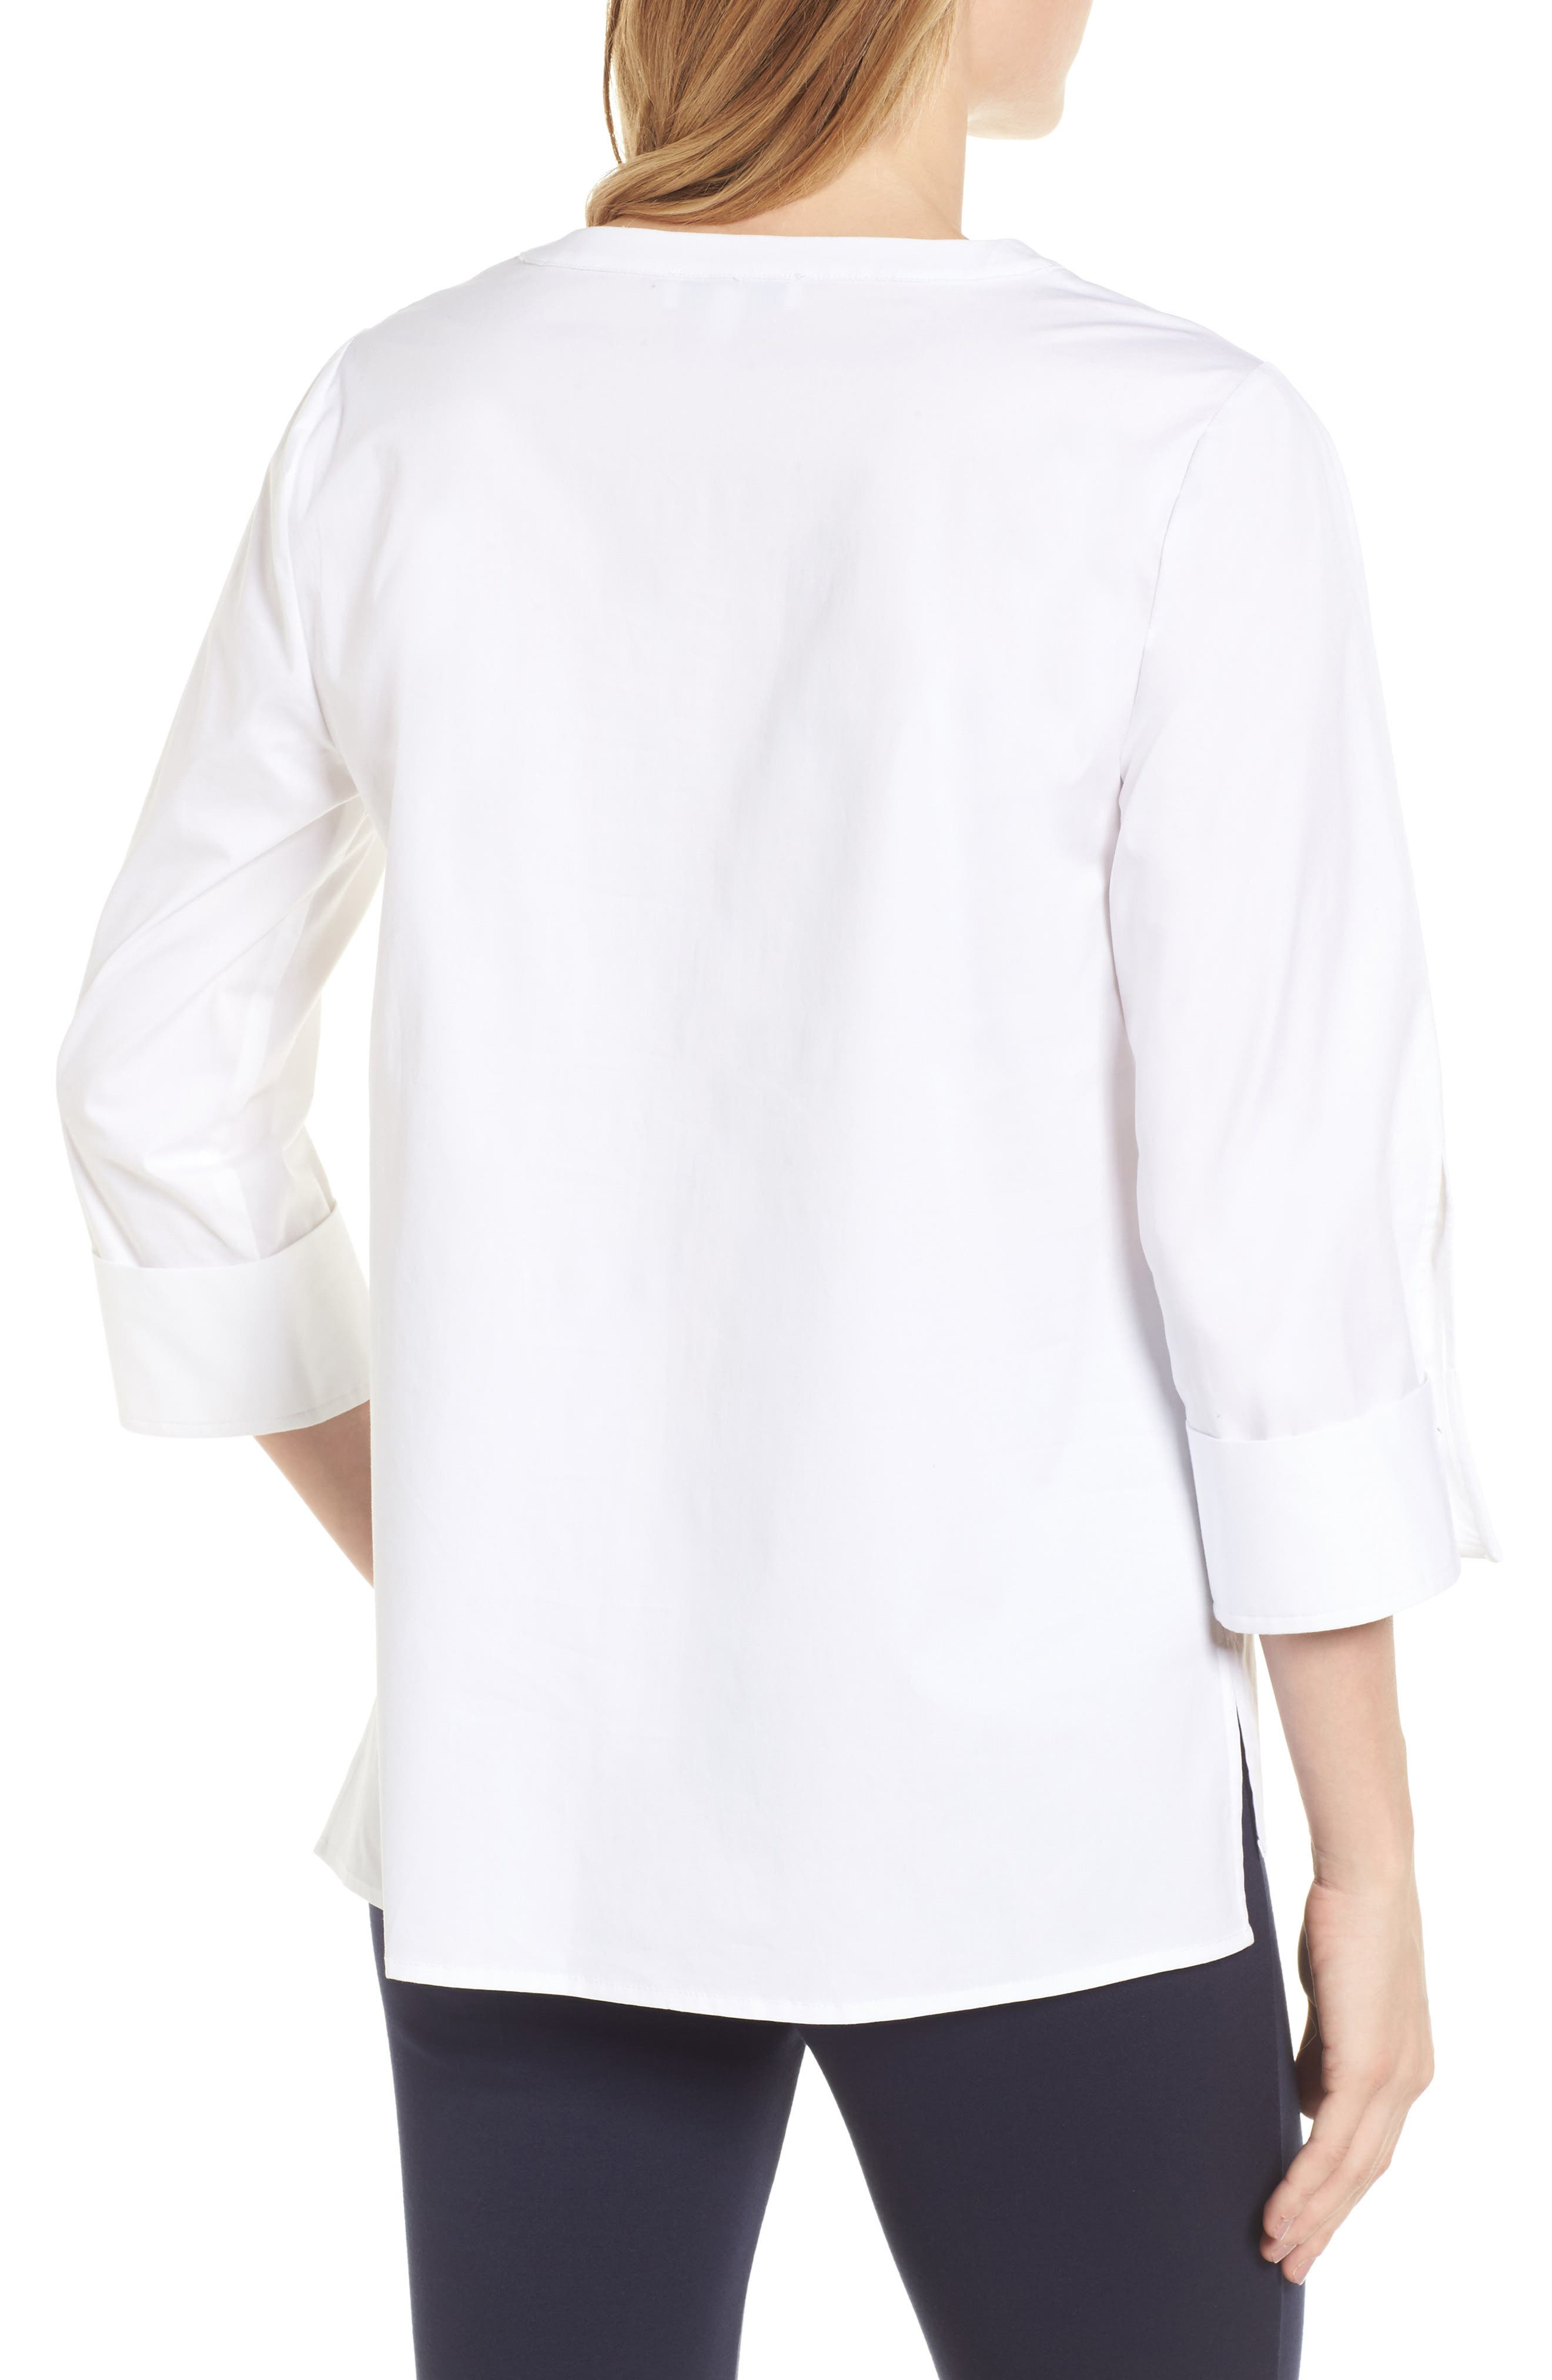 Poplin Blouse,                             Alternate thumbnail 2, color,                             145-Ultra White